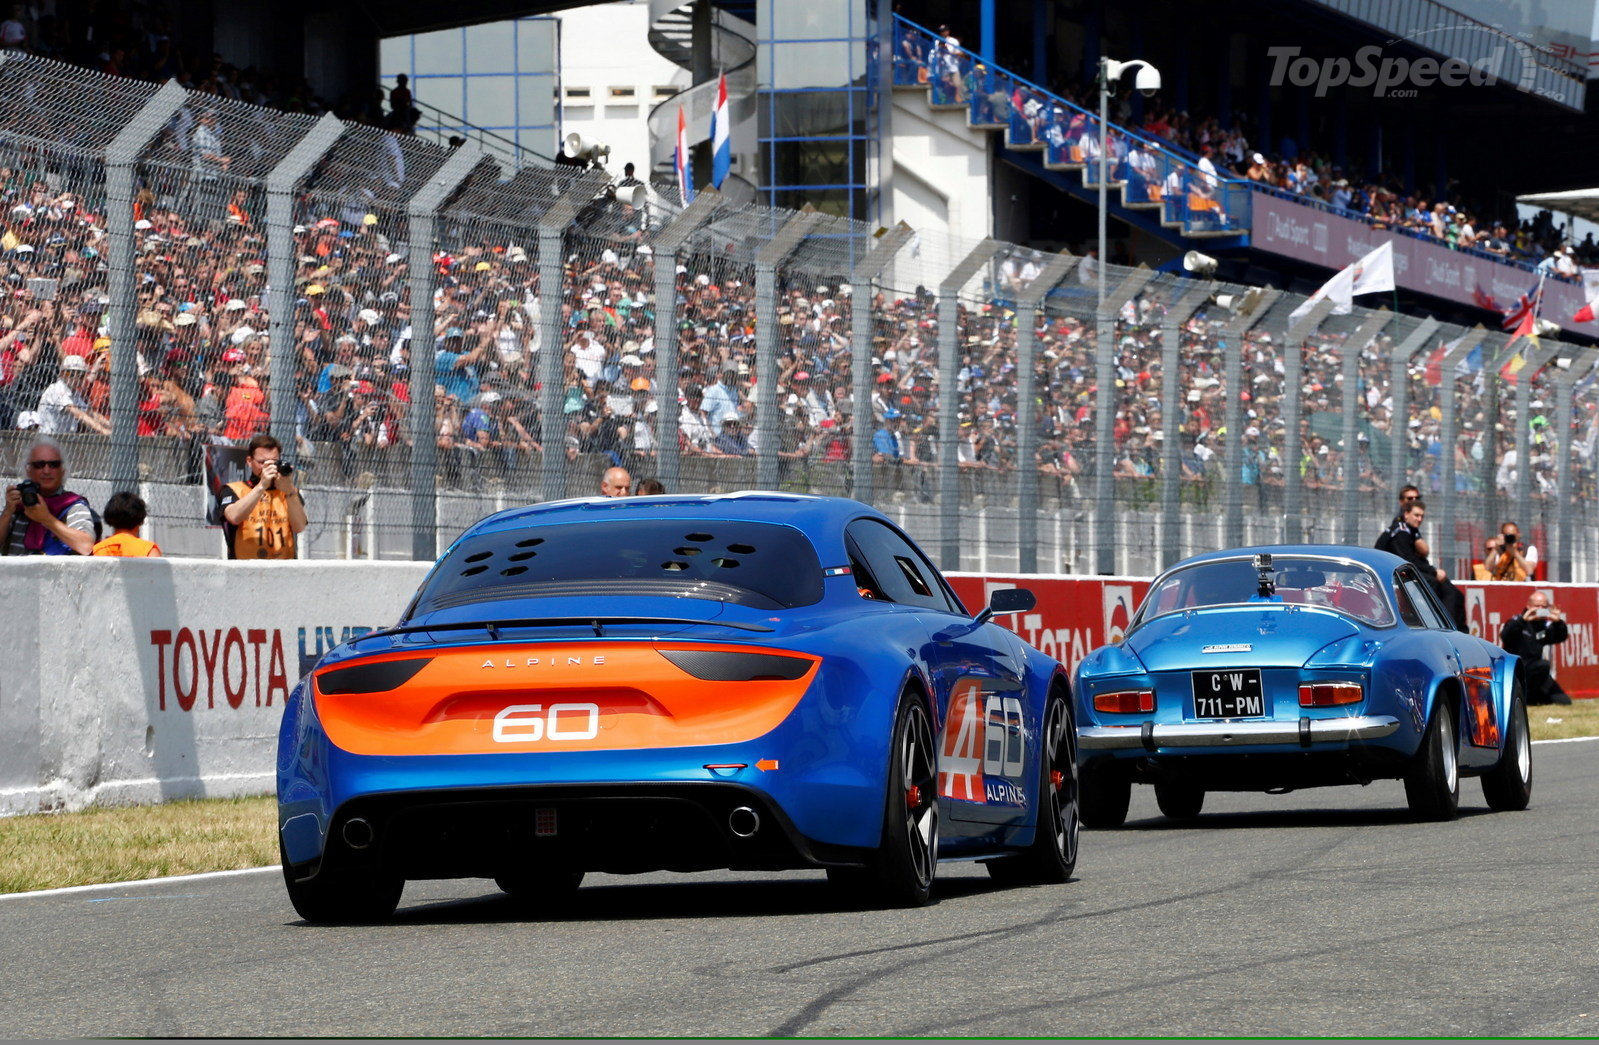 Alpine Celebration Concept tillsammans med legenden A110 på LeMans 2015.